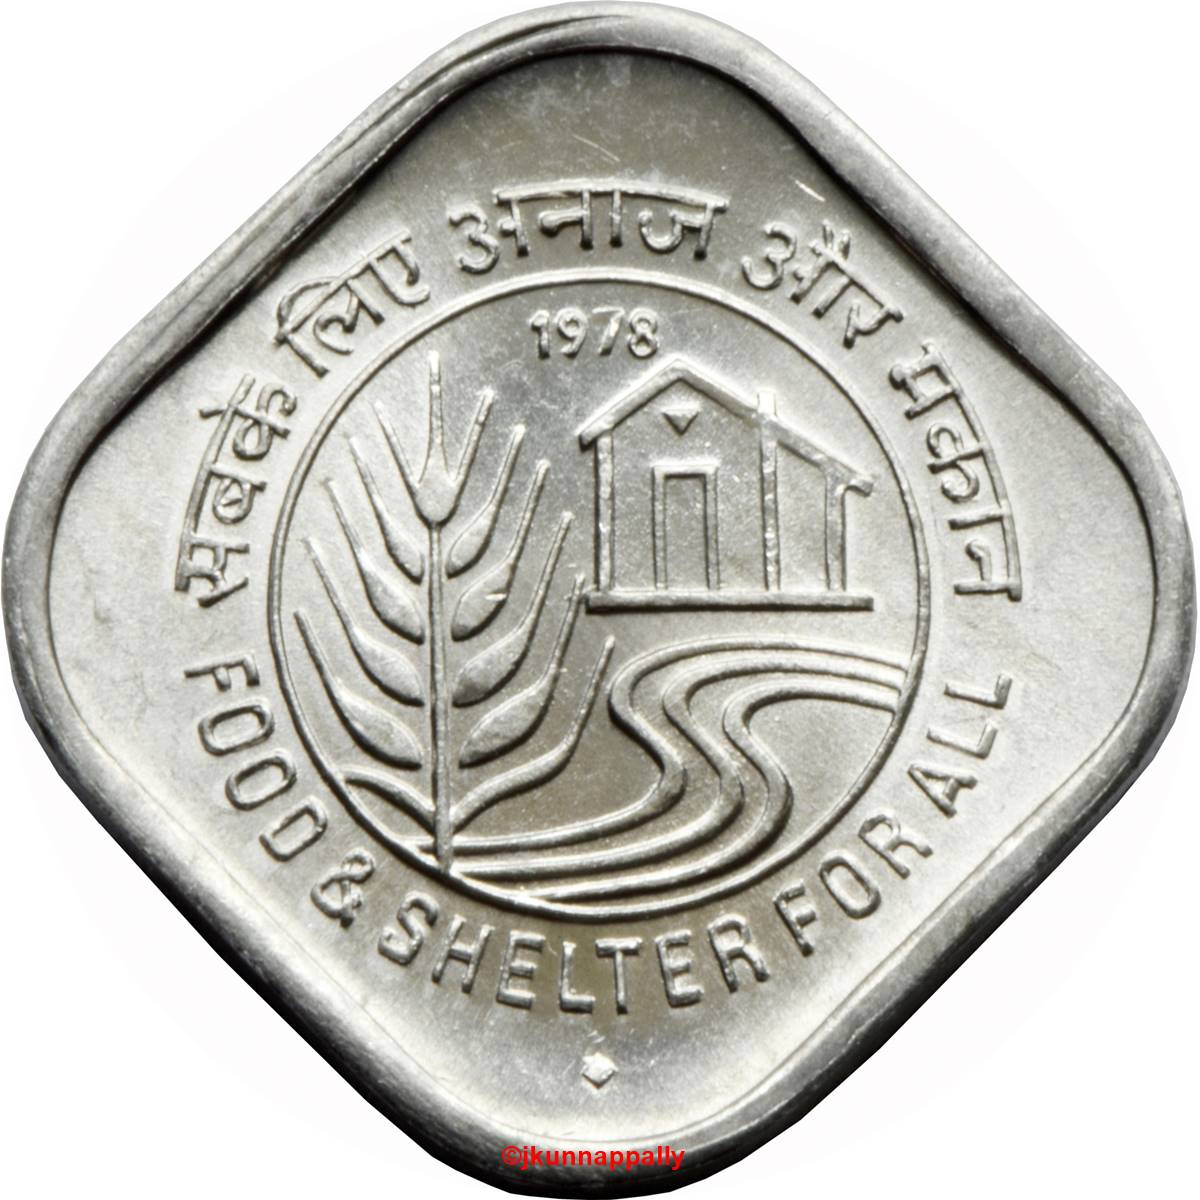 India 10 Paise Commemorative UNC Coin on *Food /& Shelter for All* 1978